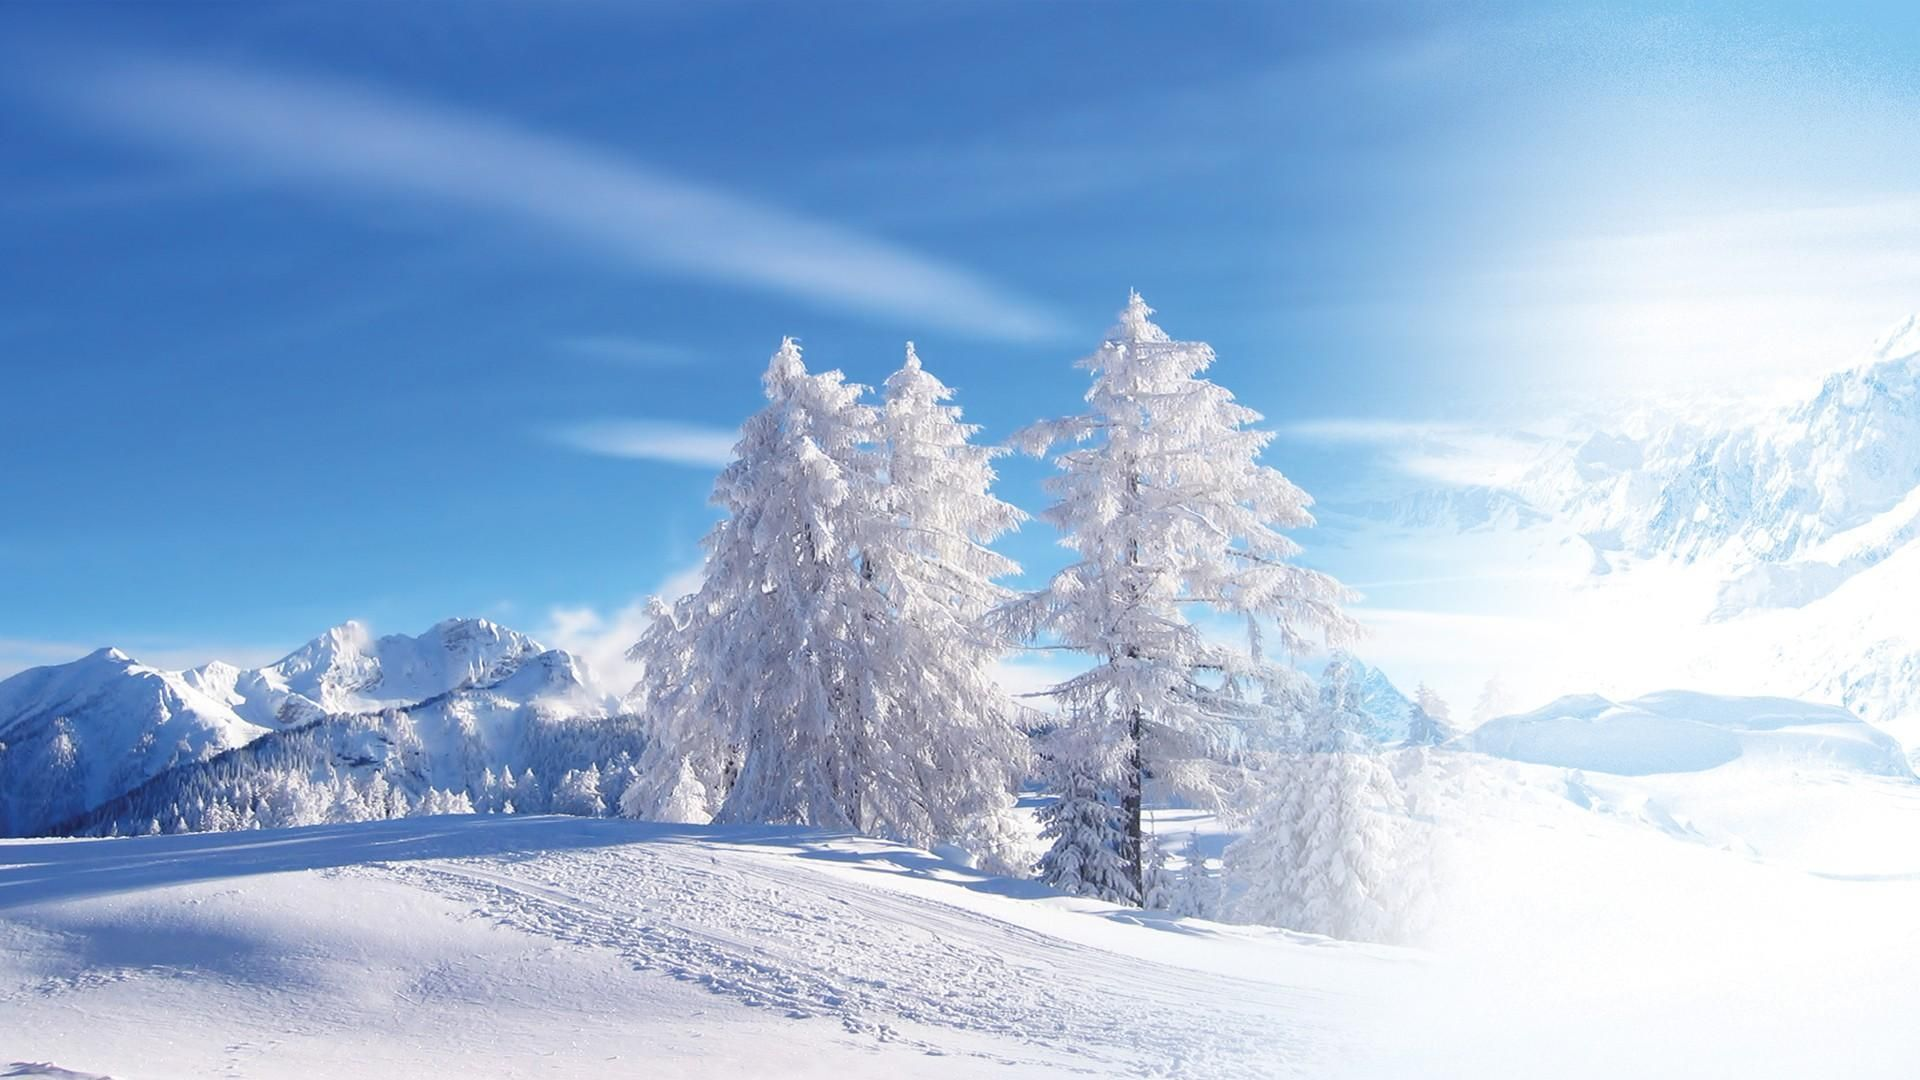 Winter Snow Scenes High Definition